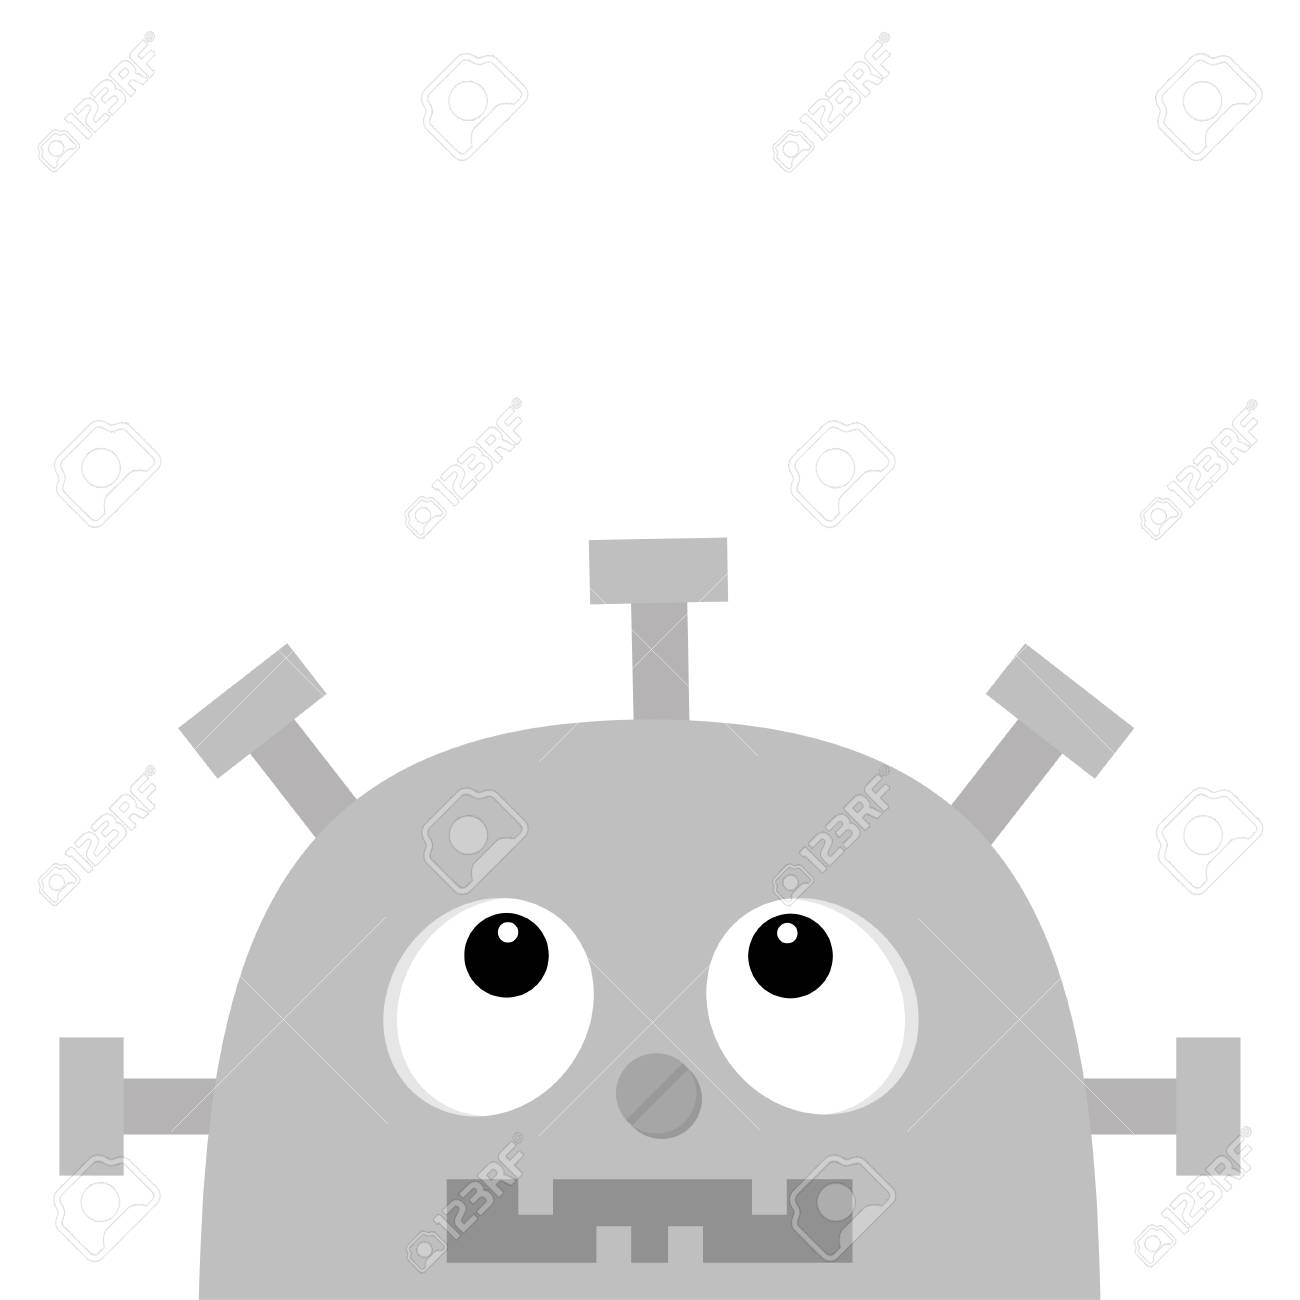 hight resolution of robot head face looking up screw nose clock heart diagram open mouth